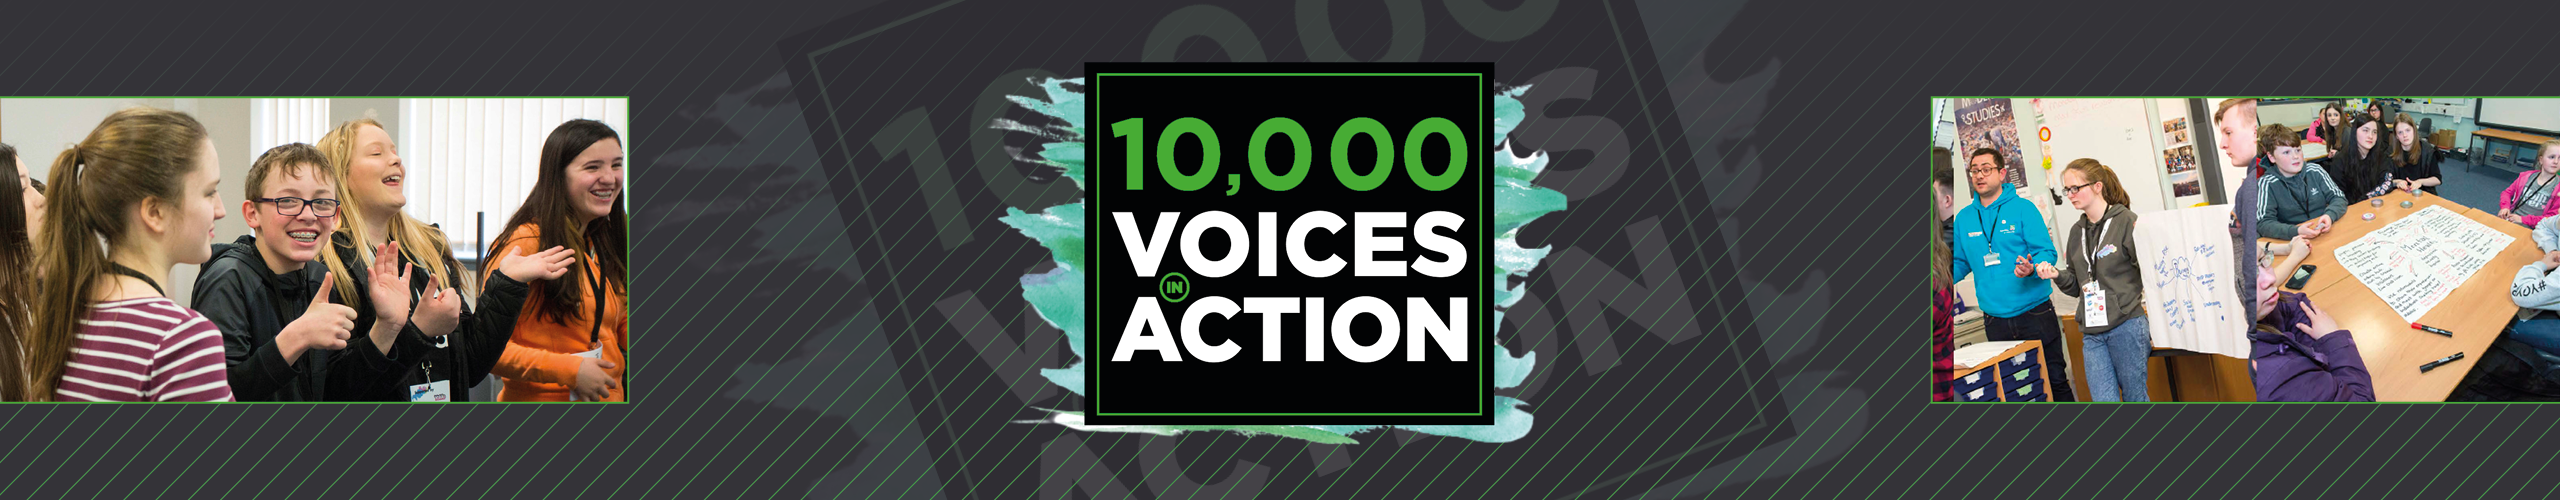 Ten Thousand Voices banner background image